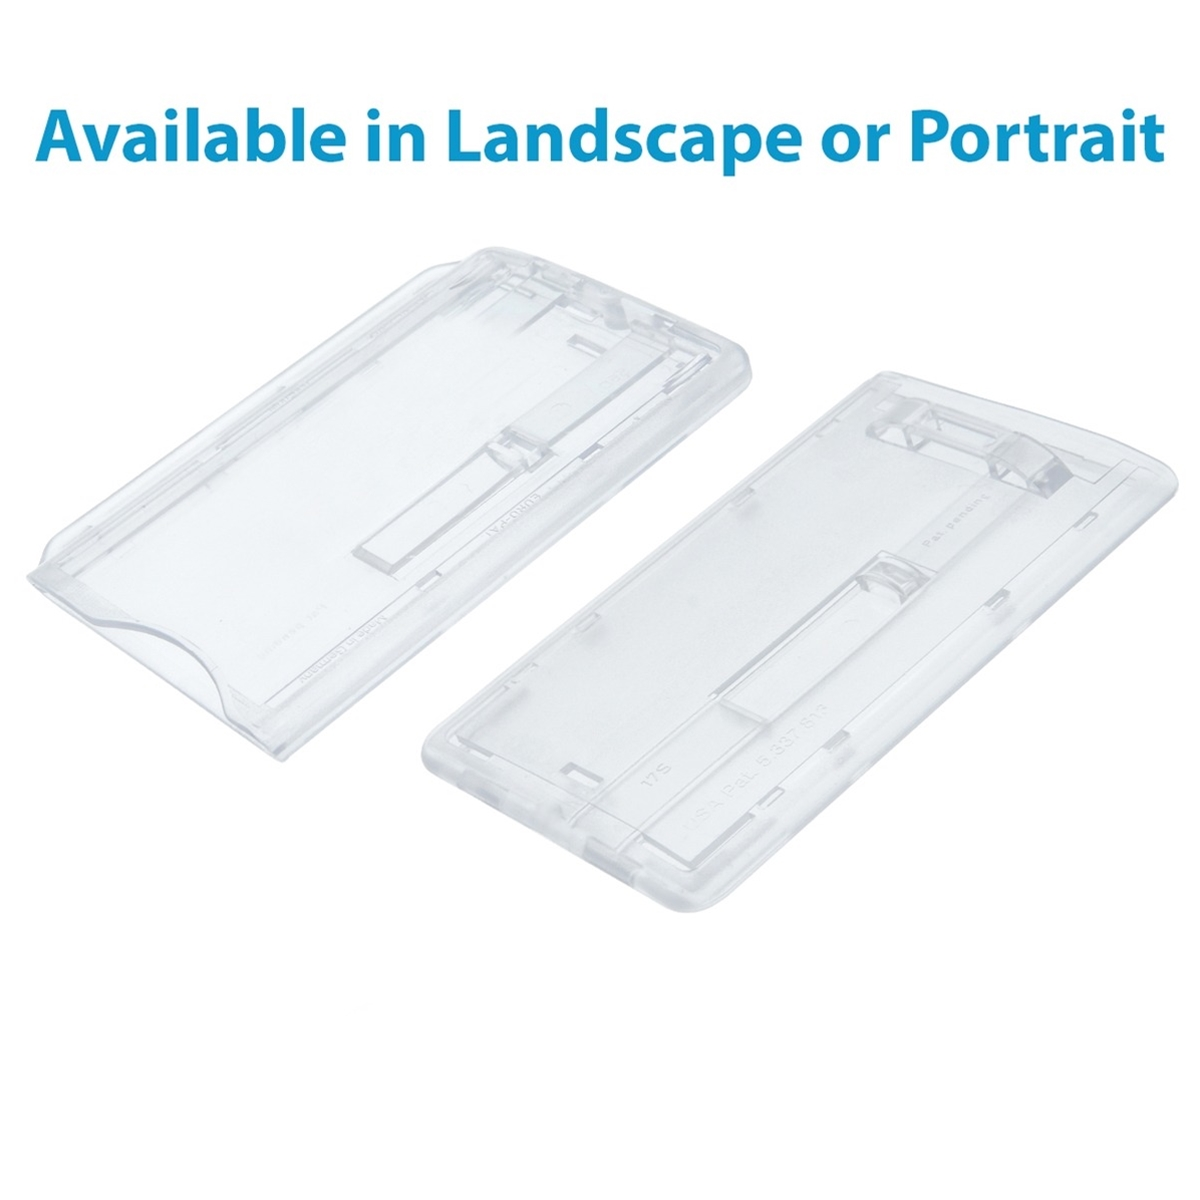 clear enclosed single id card holder with sliders in landscape and portrait postition